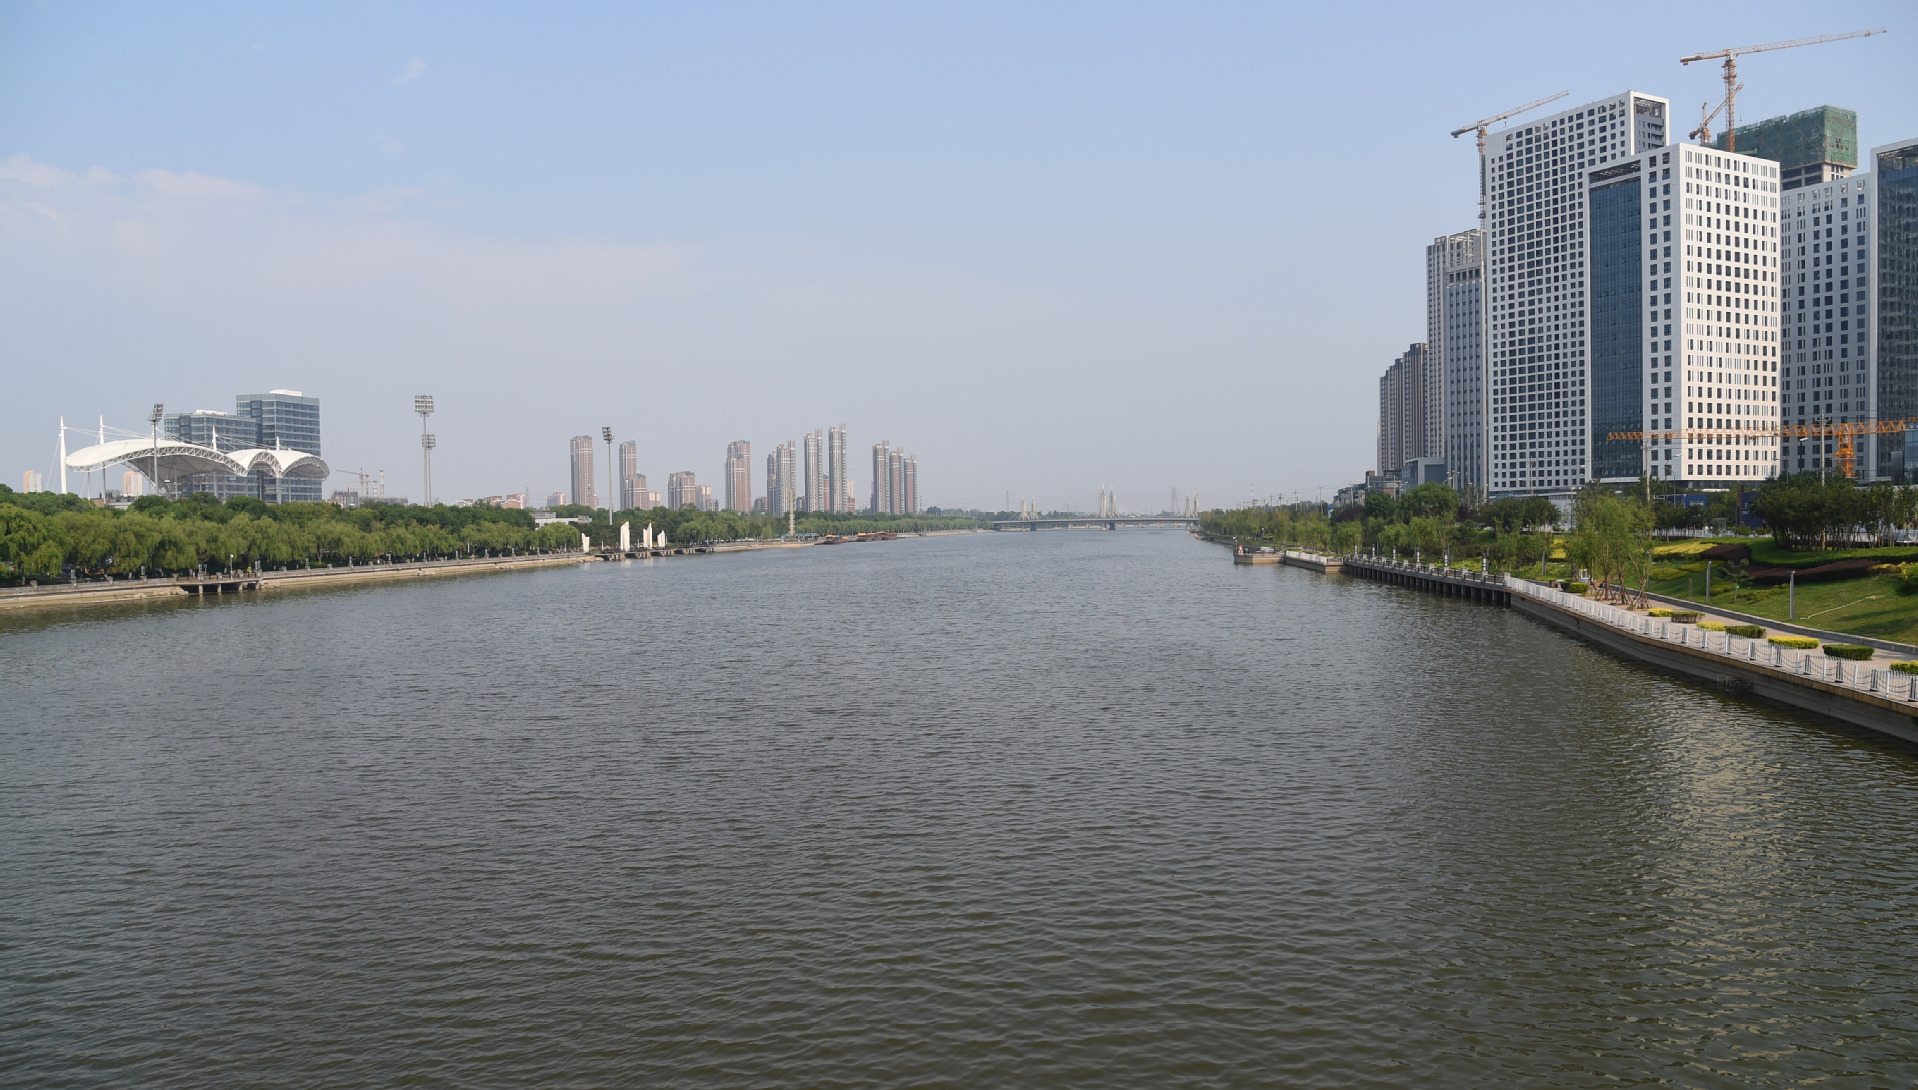 Beijing plan for Tongzhou district released